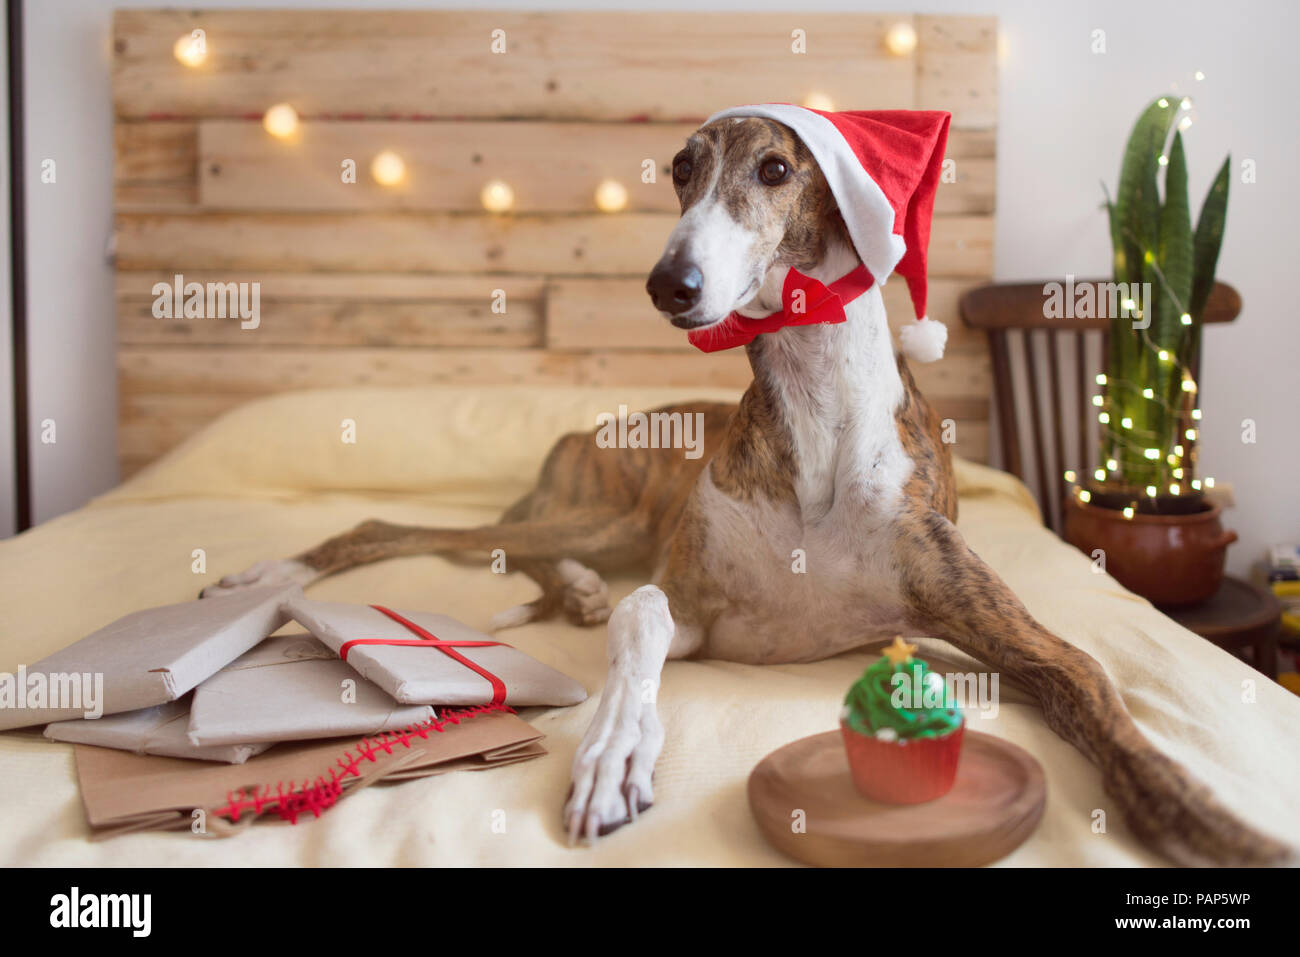 7fa6ee0d7d7d4 Portrait of Greyhound wearing Santa hat lying on bed with Christmas presents